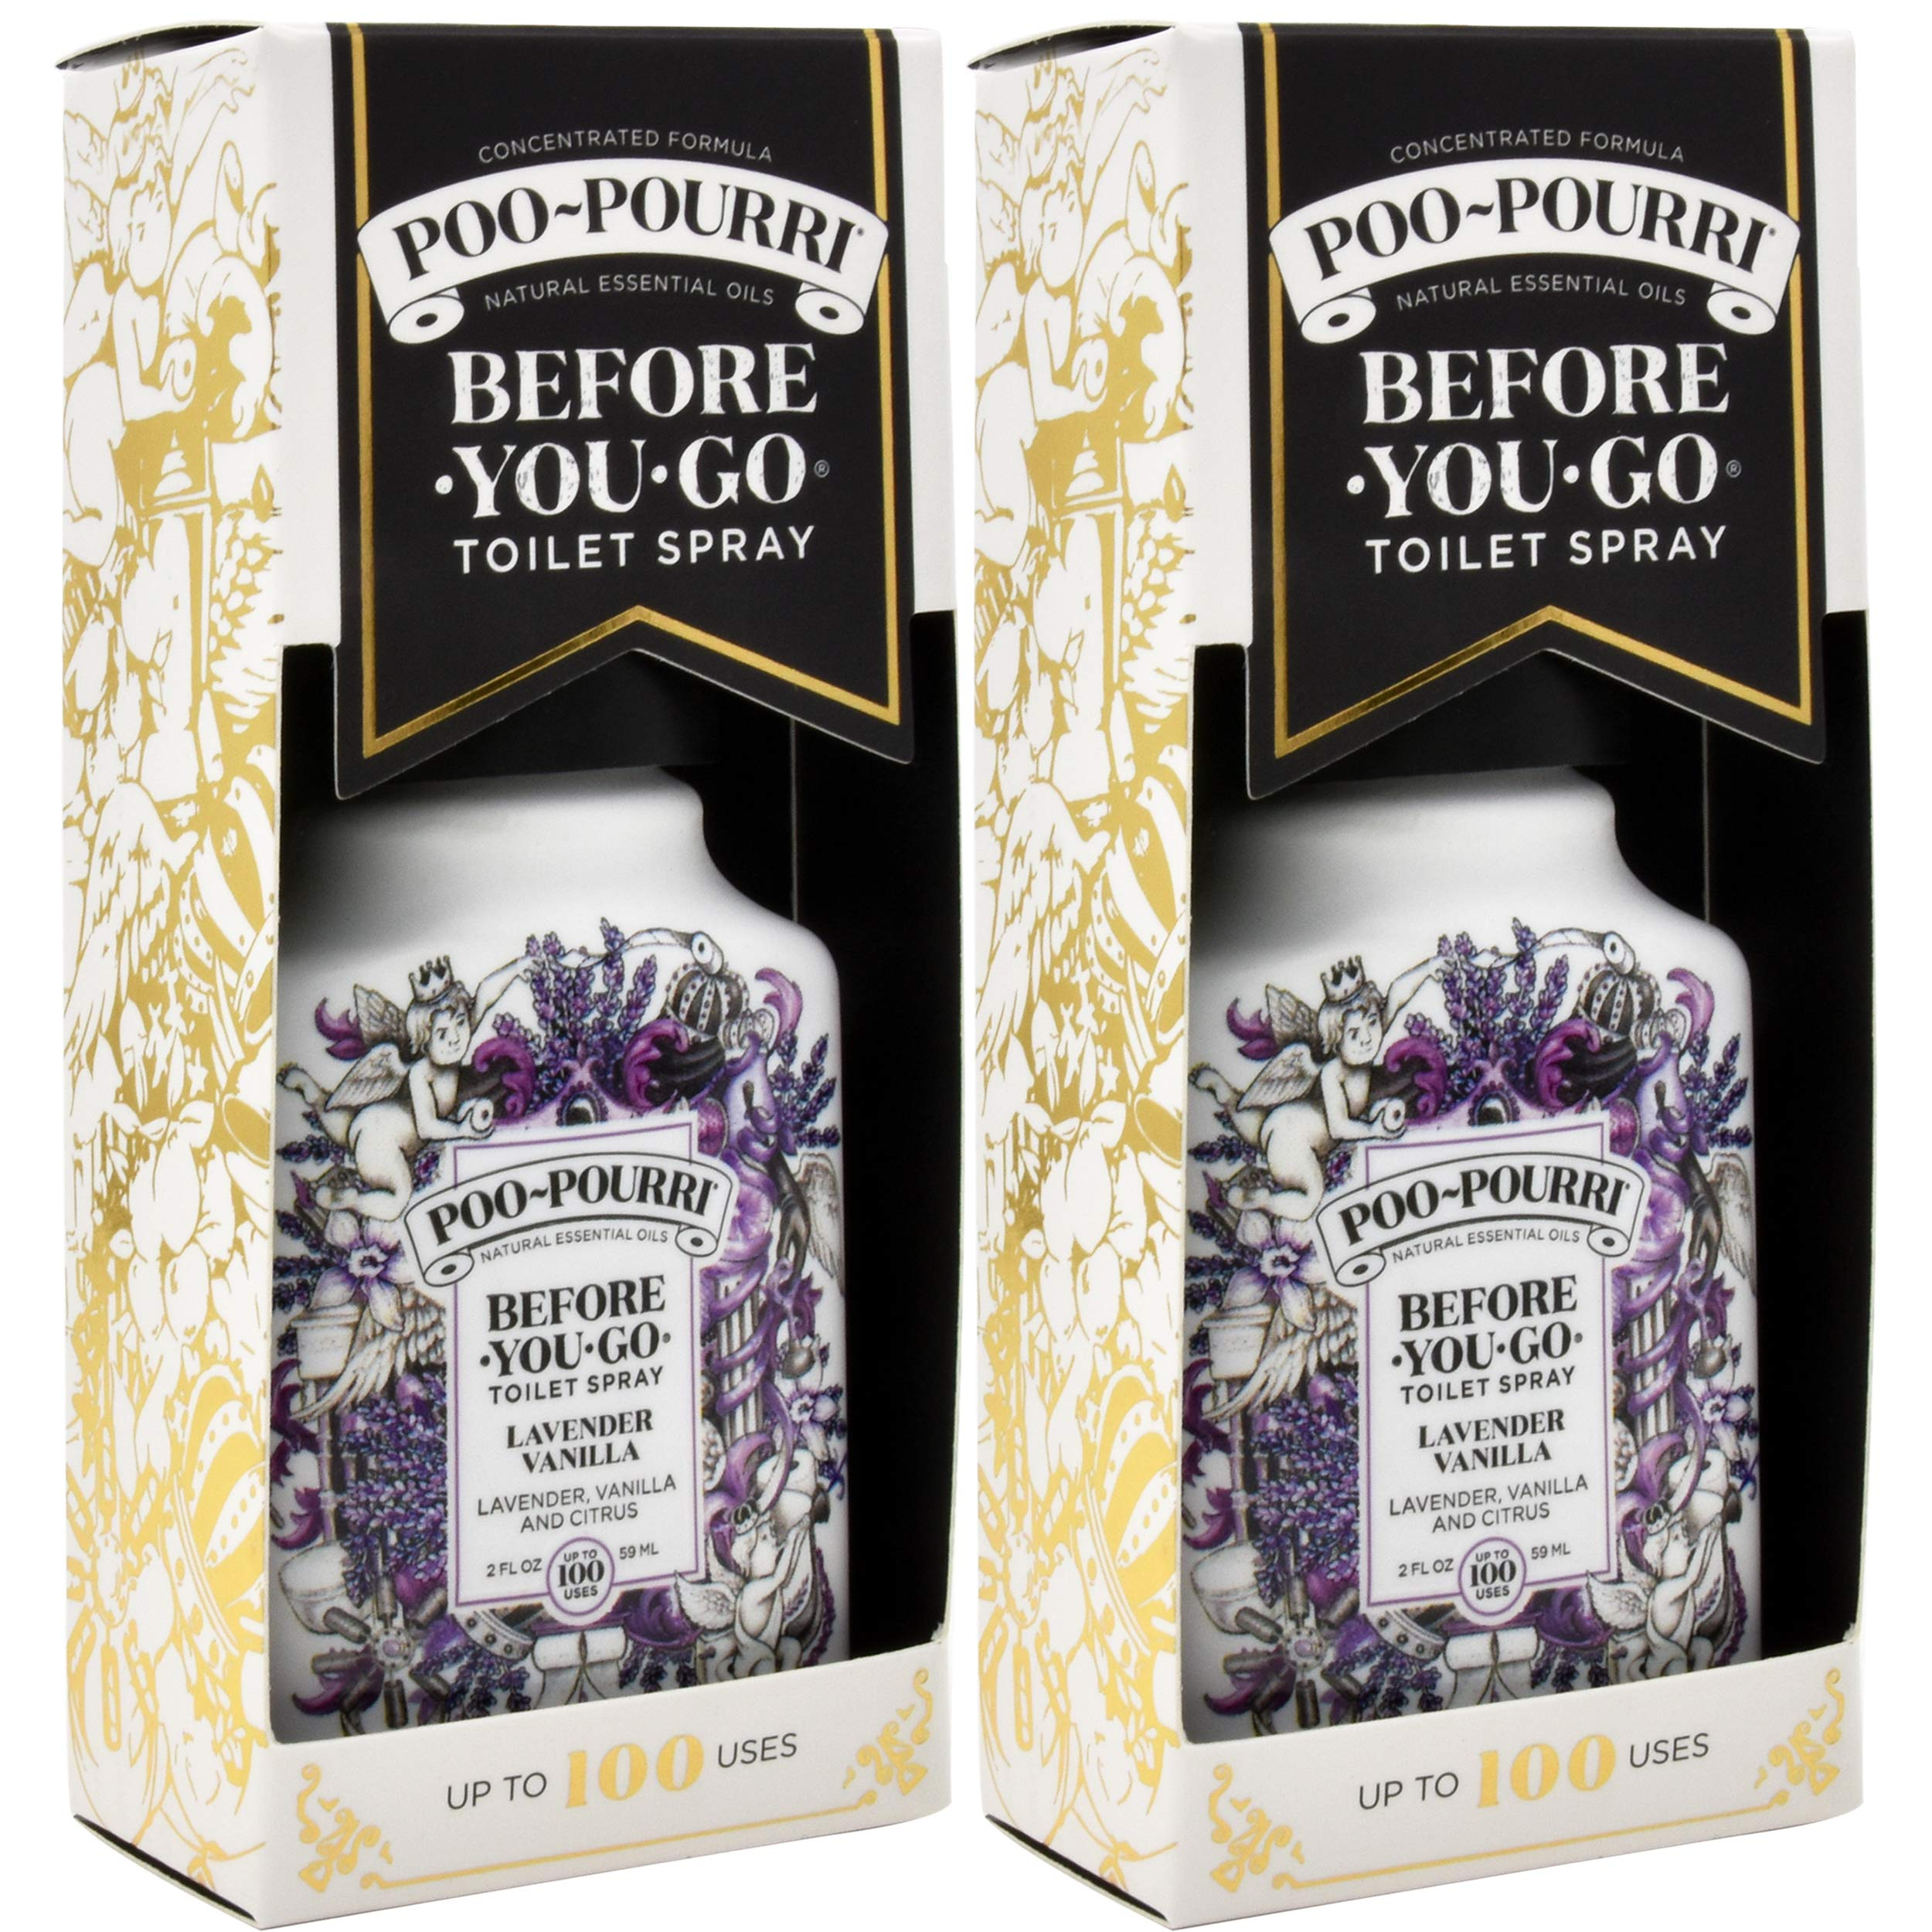 Poo-Pourri Before-You-Go Bathroom Spray, Lavender Vanilla - 2 Ounce, 2 Pack with Ornament Box   by Poo-Pourri (Image #2)